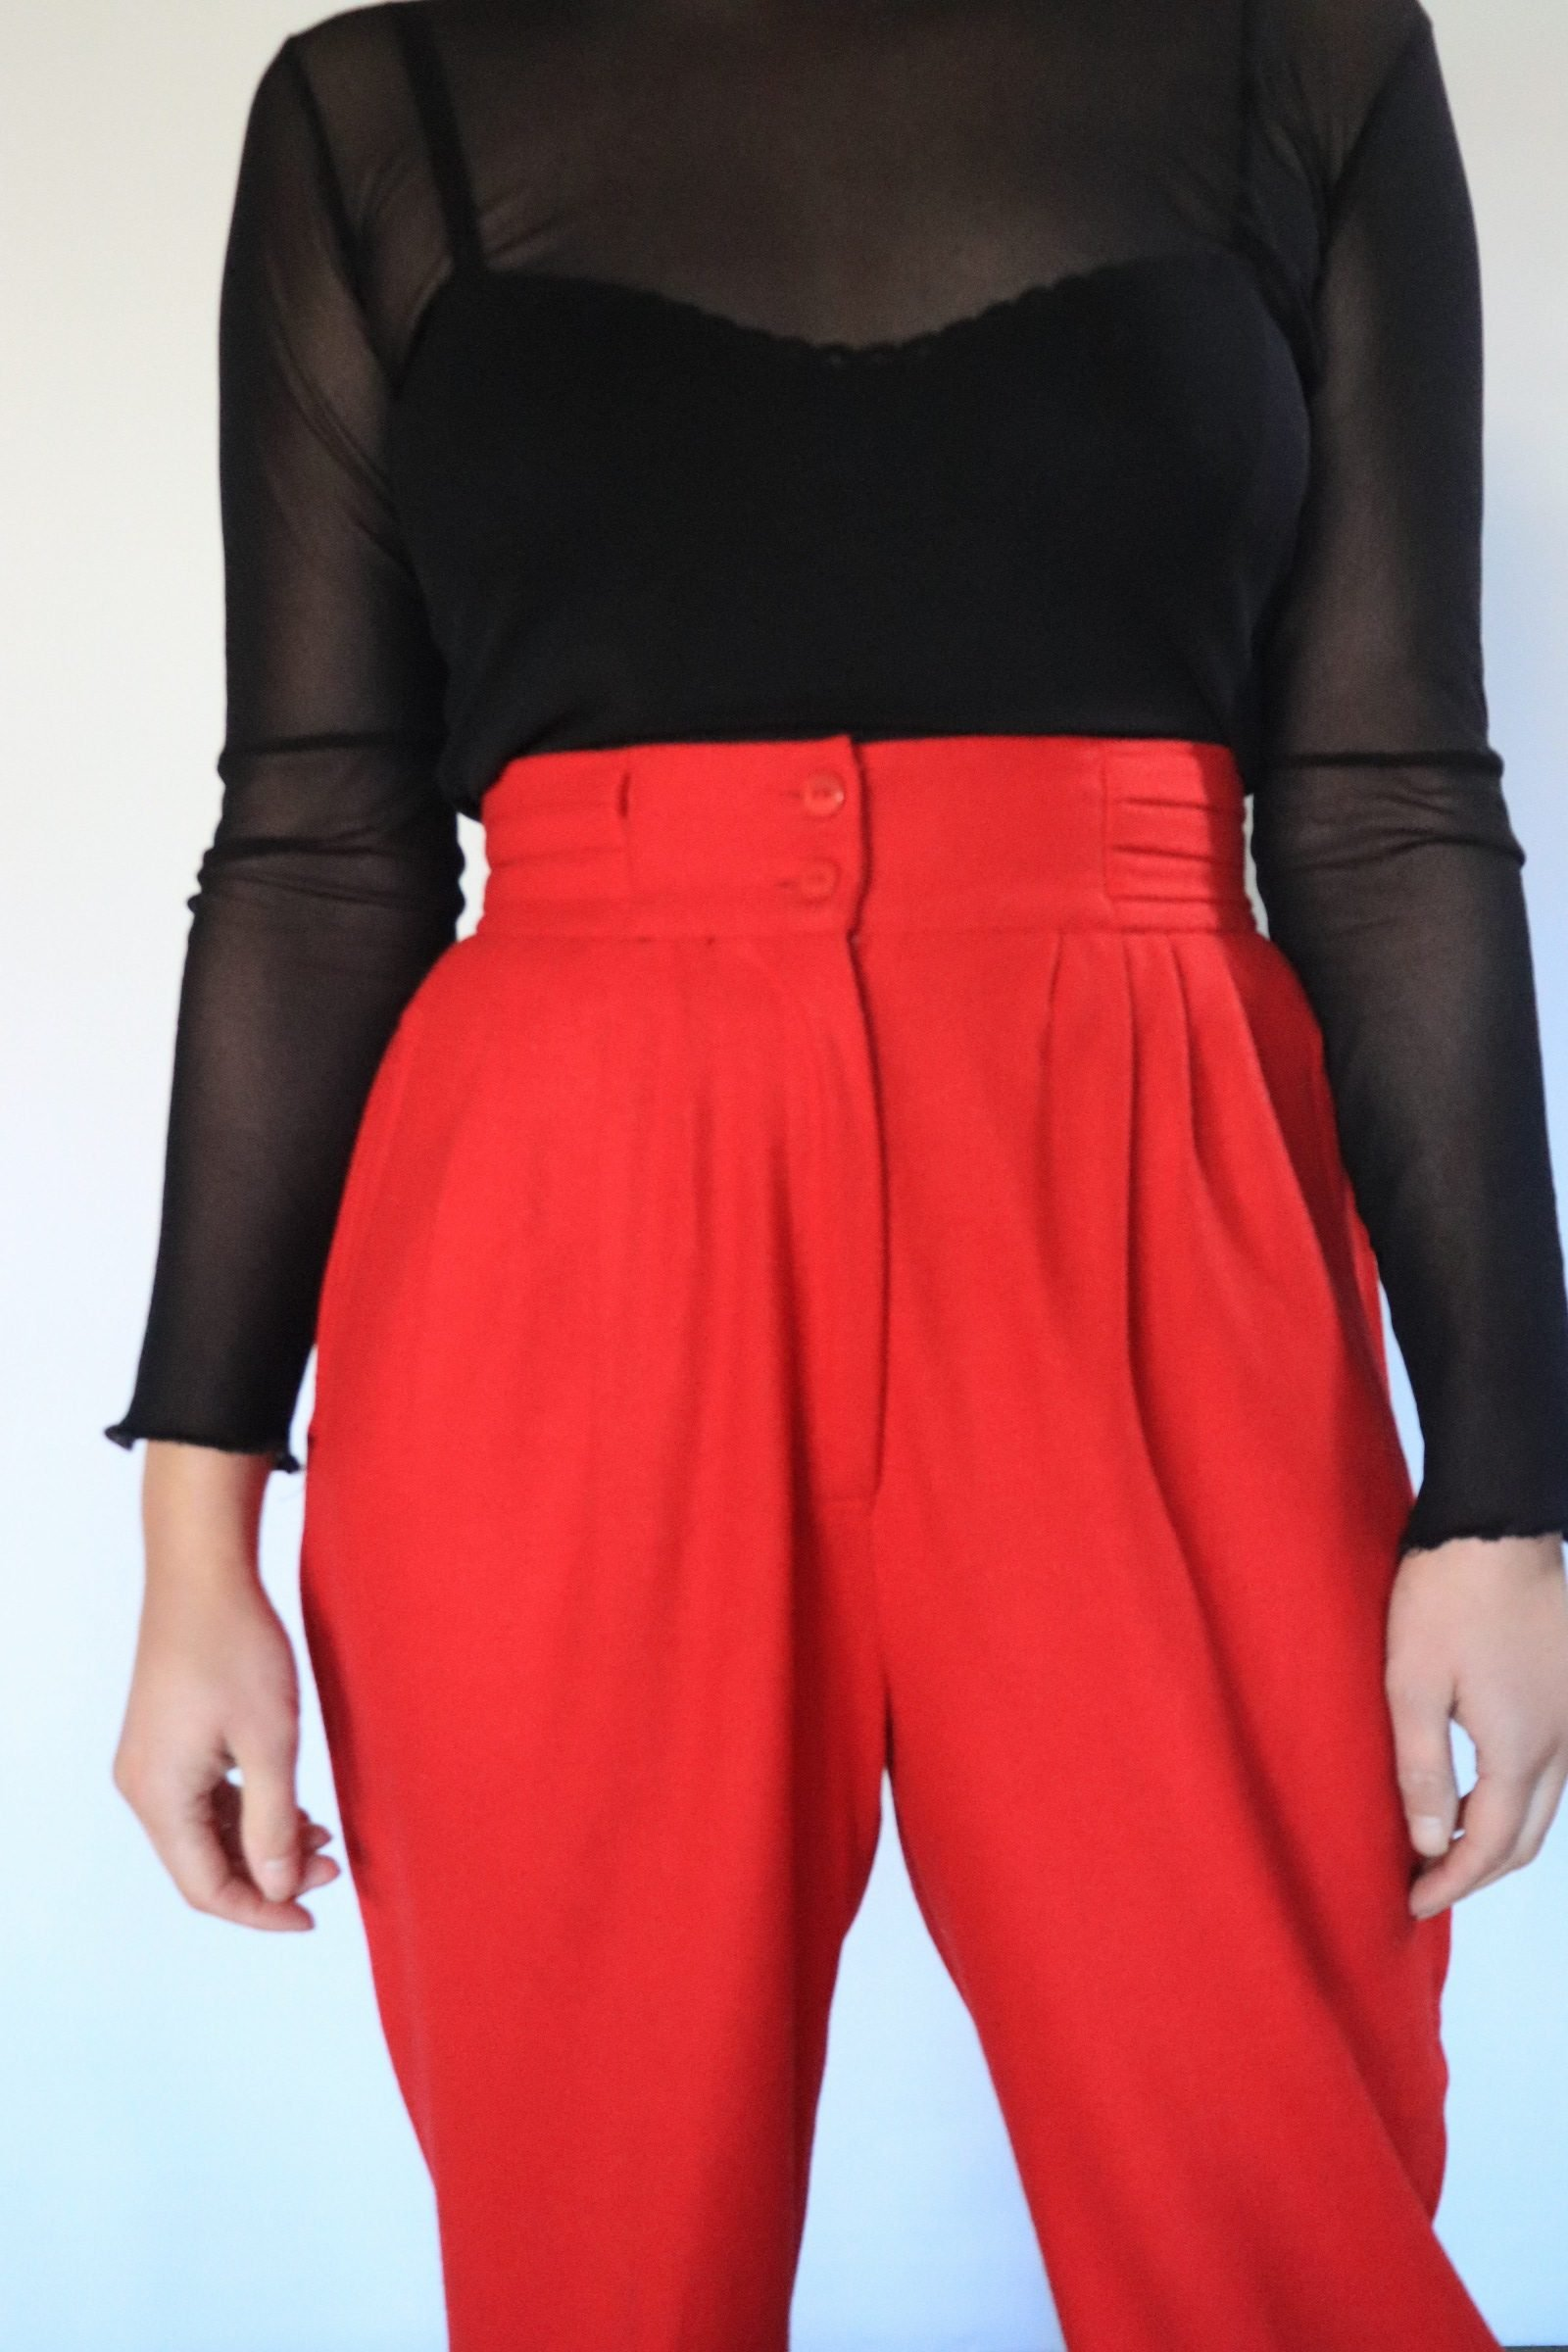 90s red wool high waisted pants